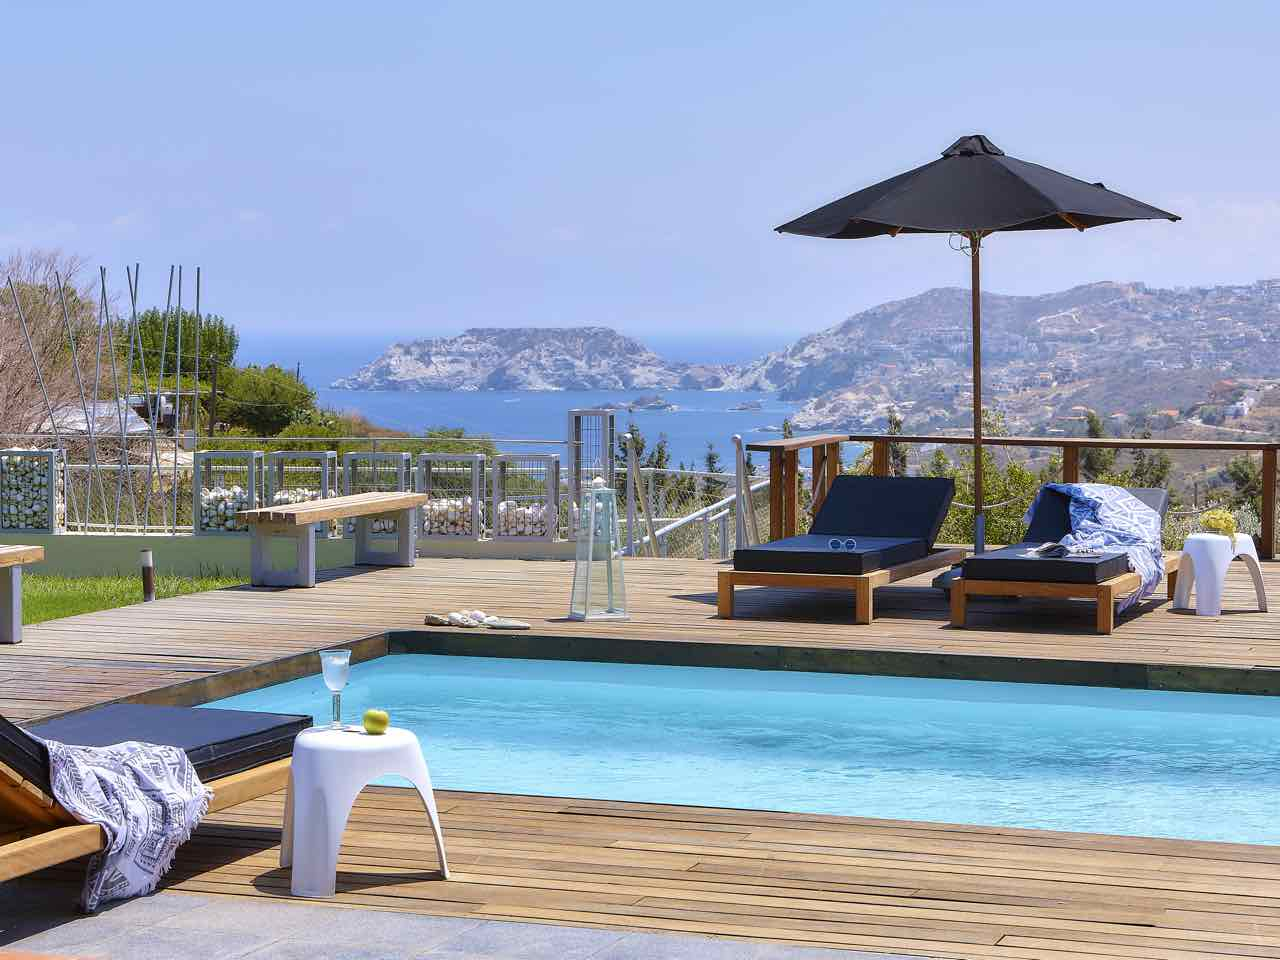 Breaking_News_:_30%_Offer_for_July_at_our_Casa_Blue_Villa